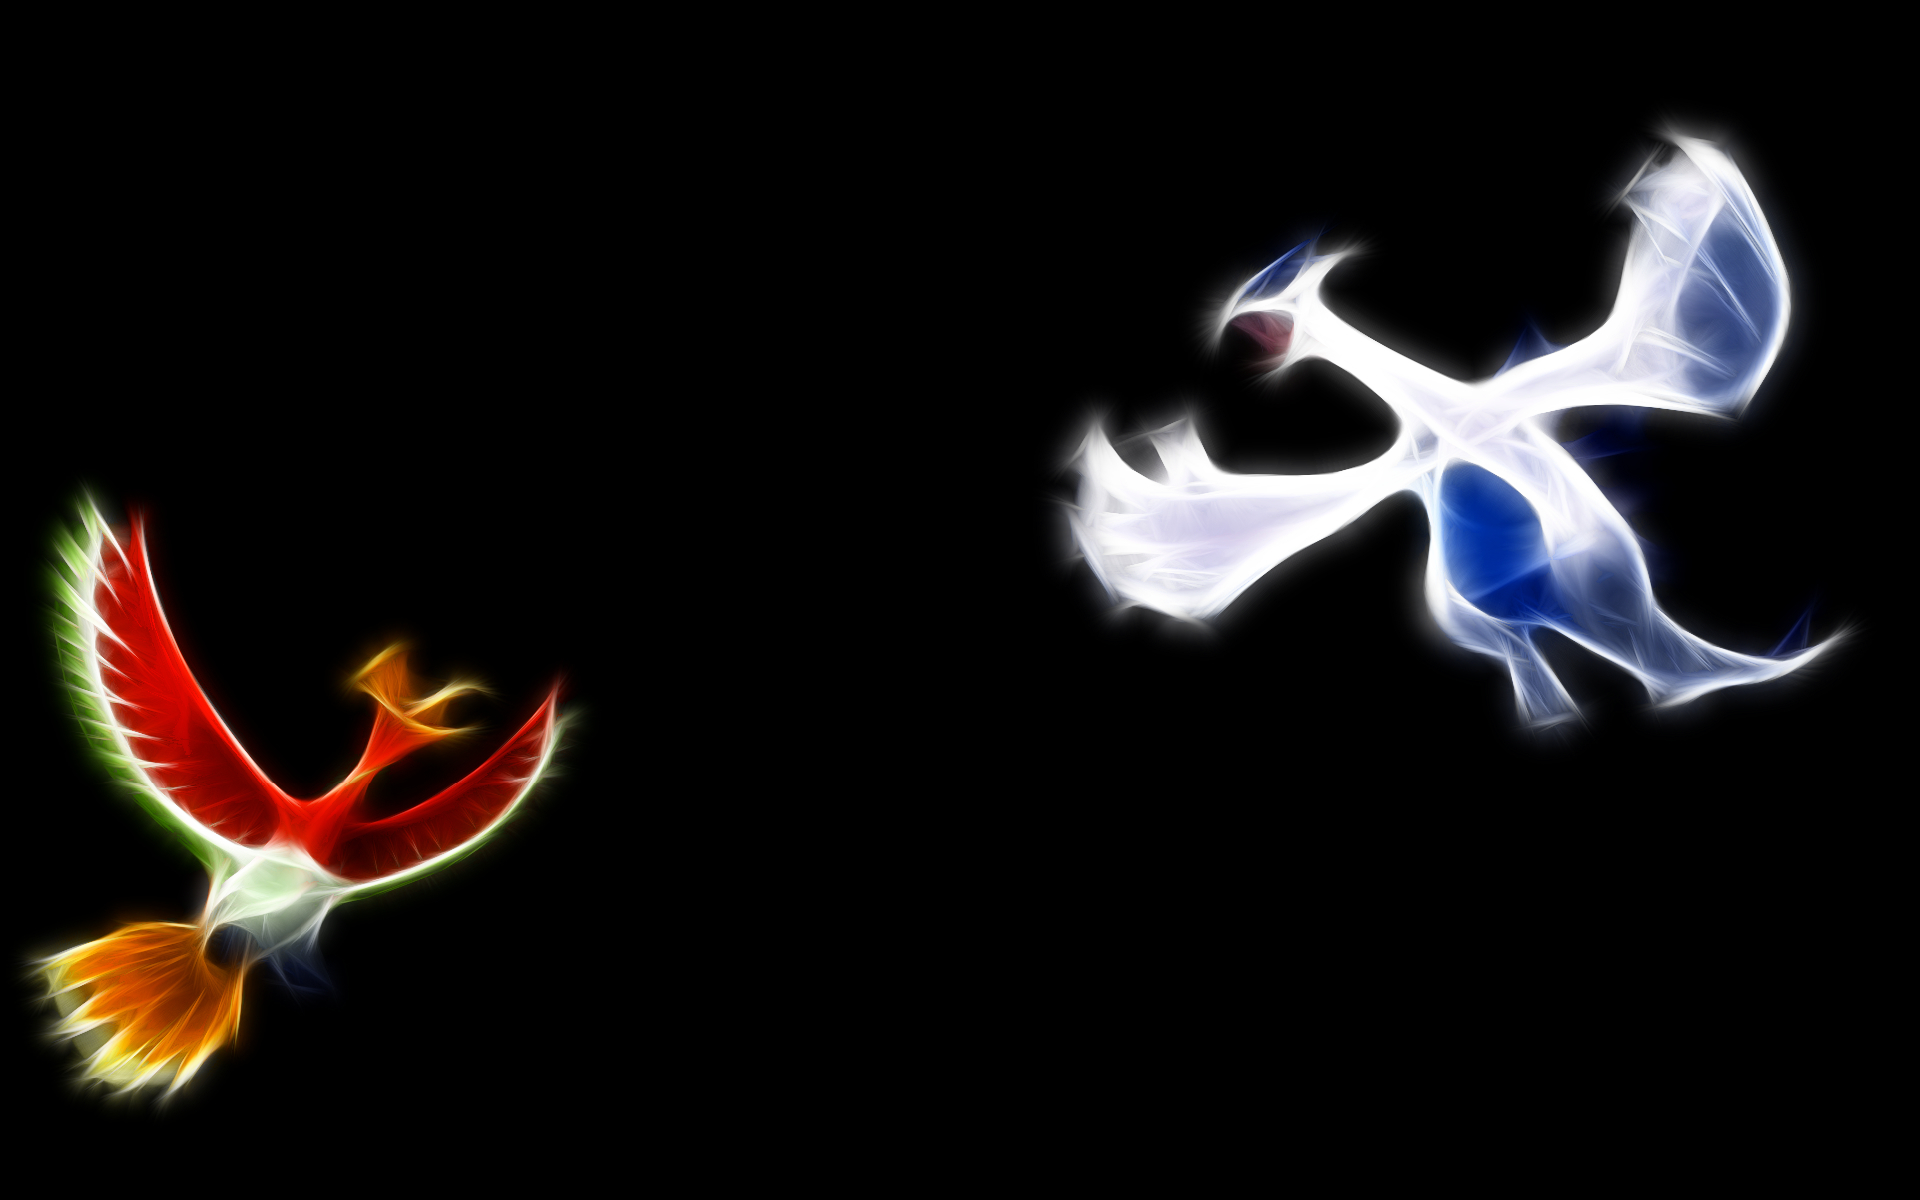 Pokemon lugia Ho-oh black HD Wallpaper